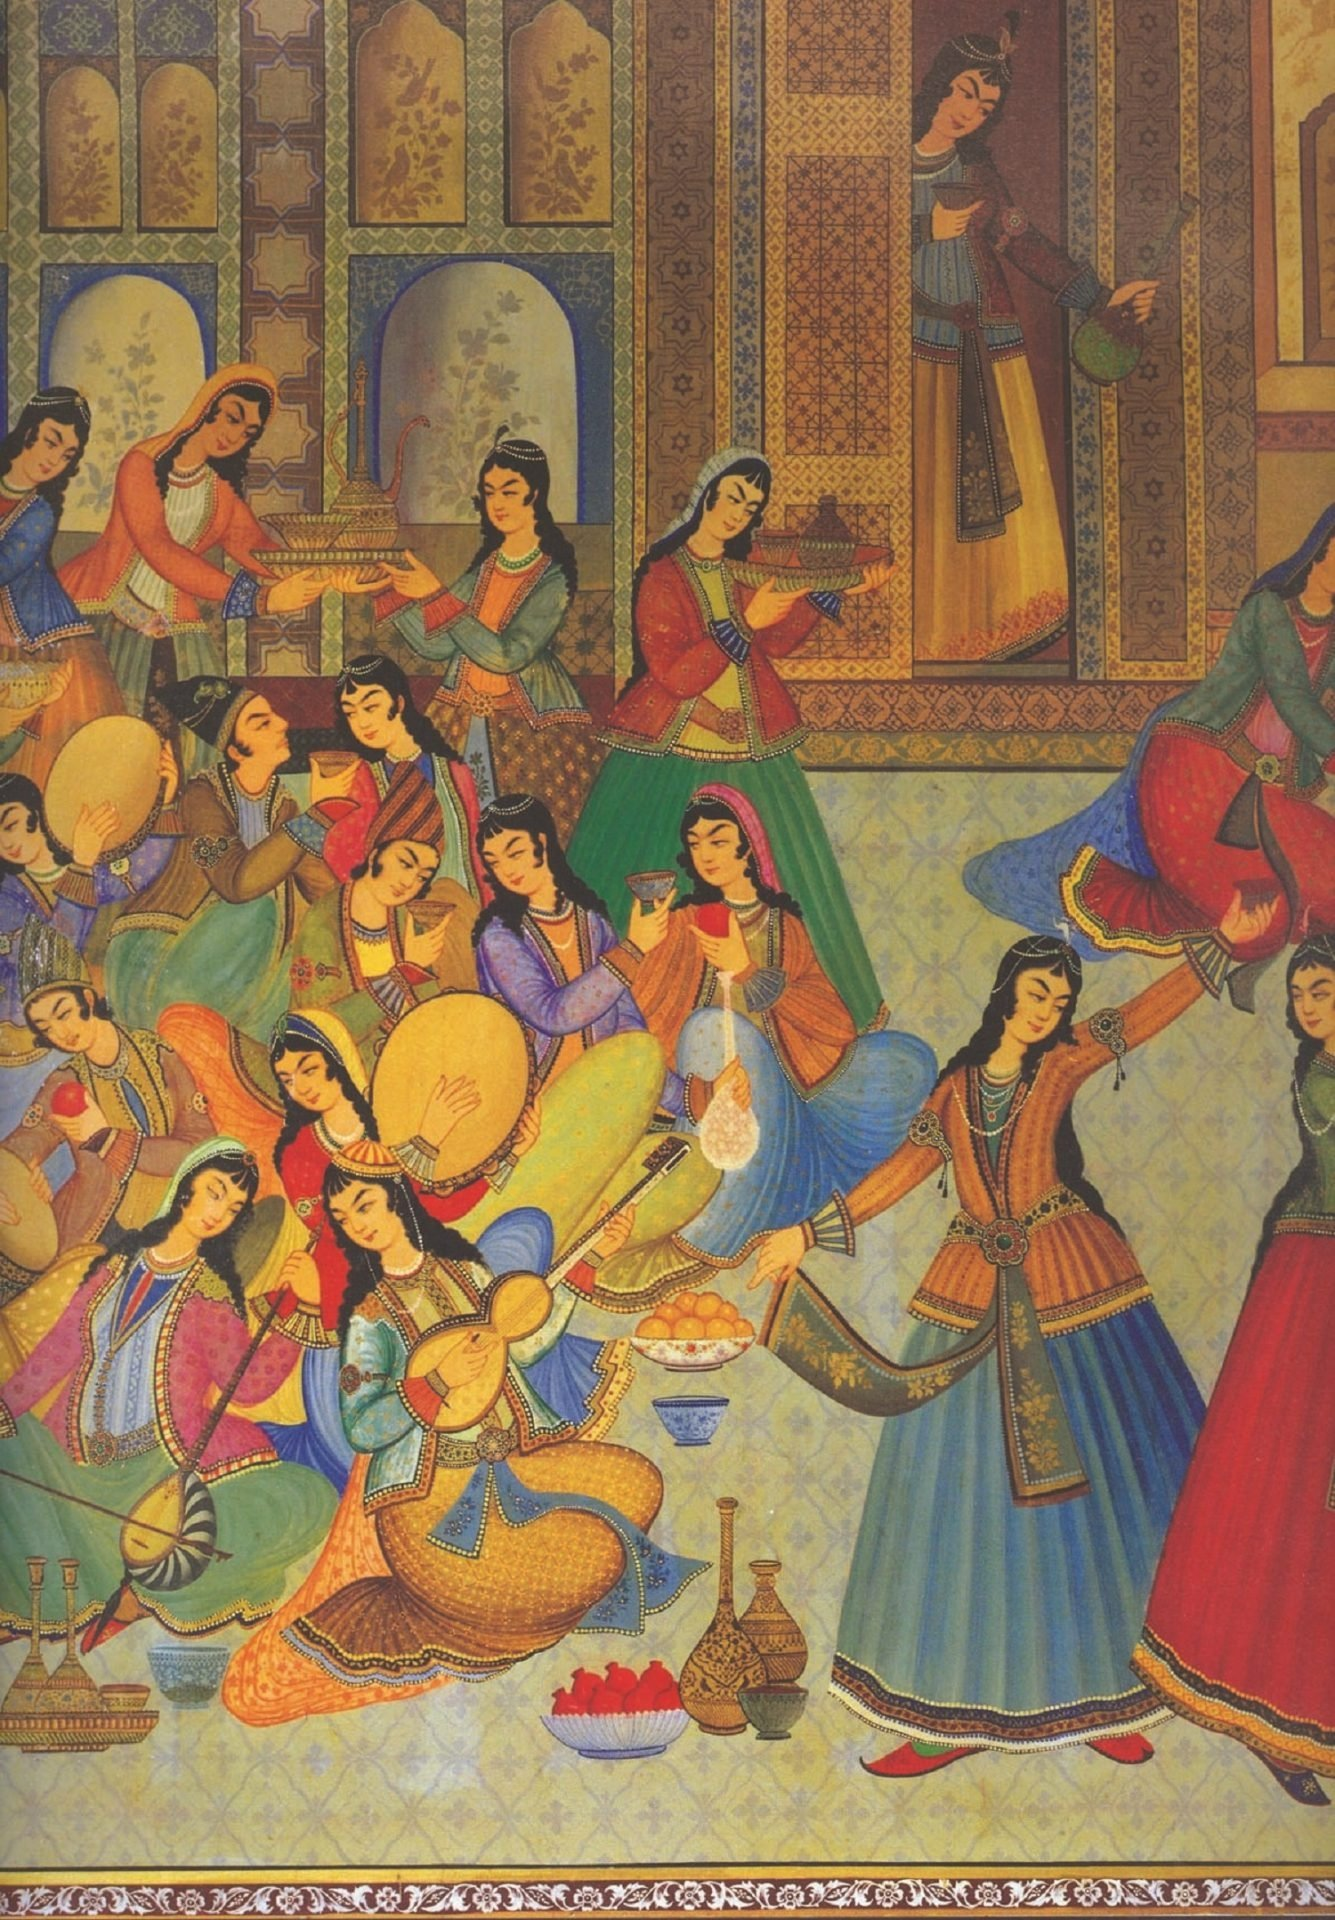 A miniature illustrates women in the Ottoman Palace. (Archive Photo)